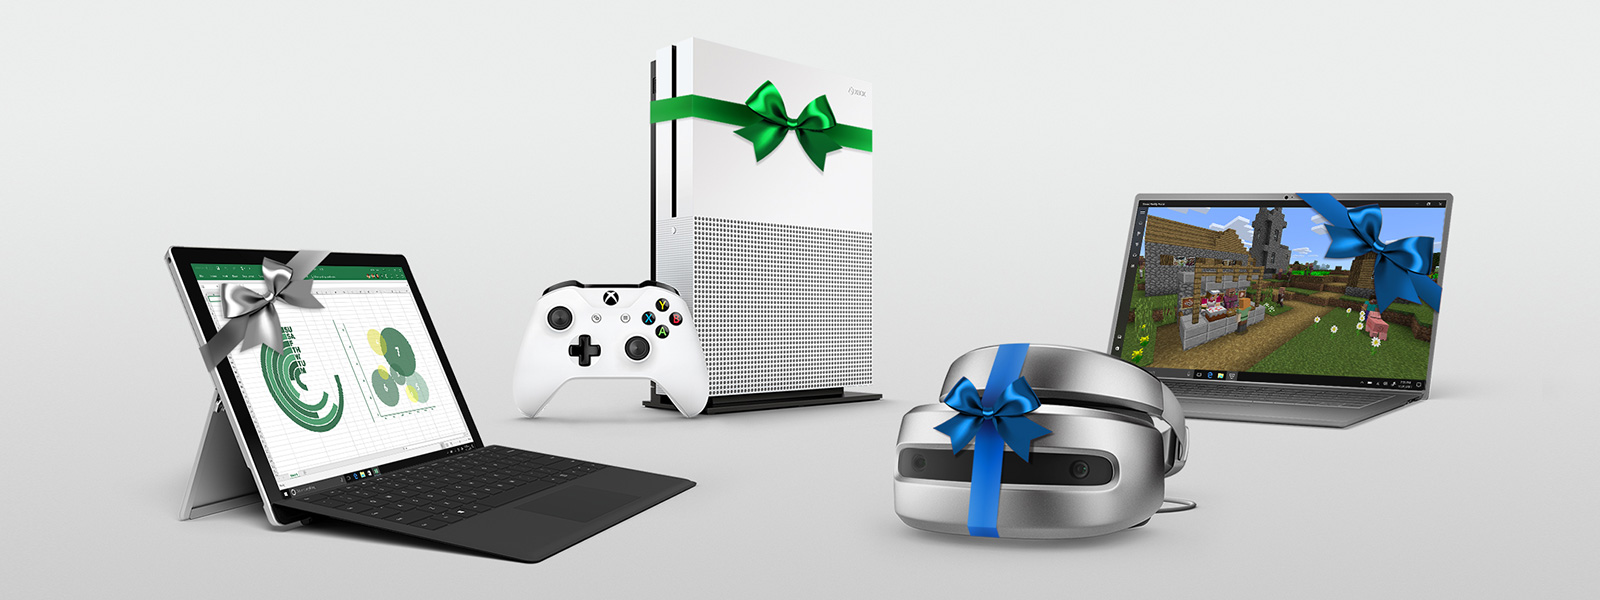 A Windows Mixed Reality Headset, a Windows 10 PC, a Surface Pro and an Xbox One S all with ribbons on them.